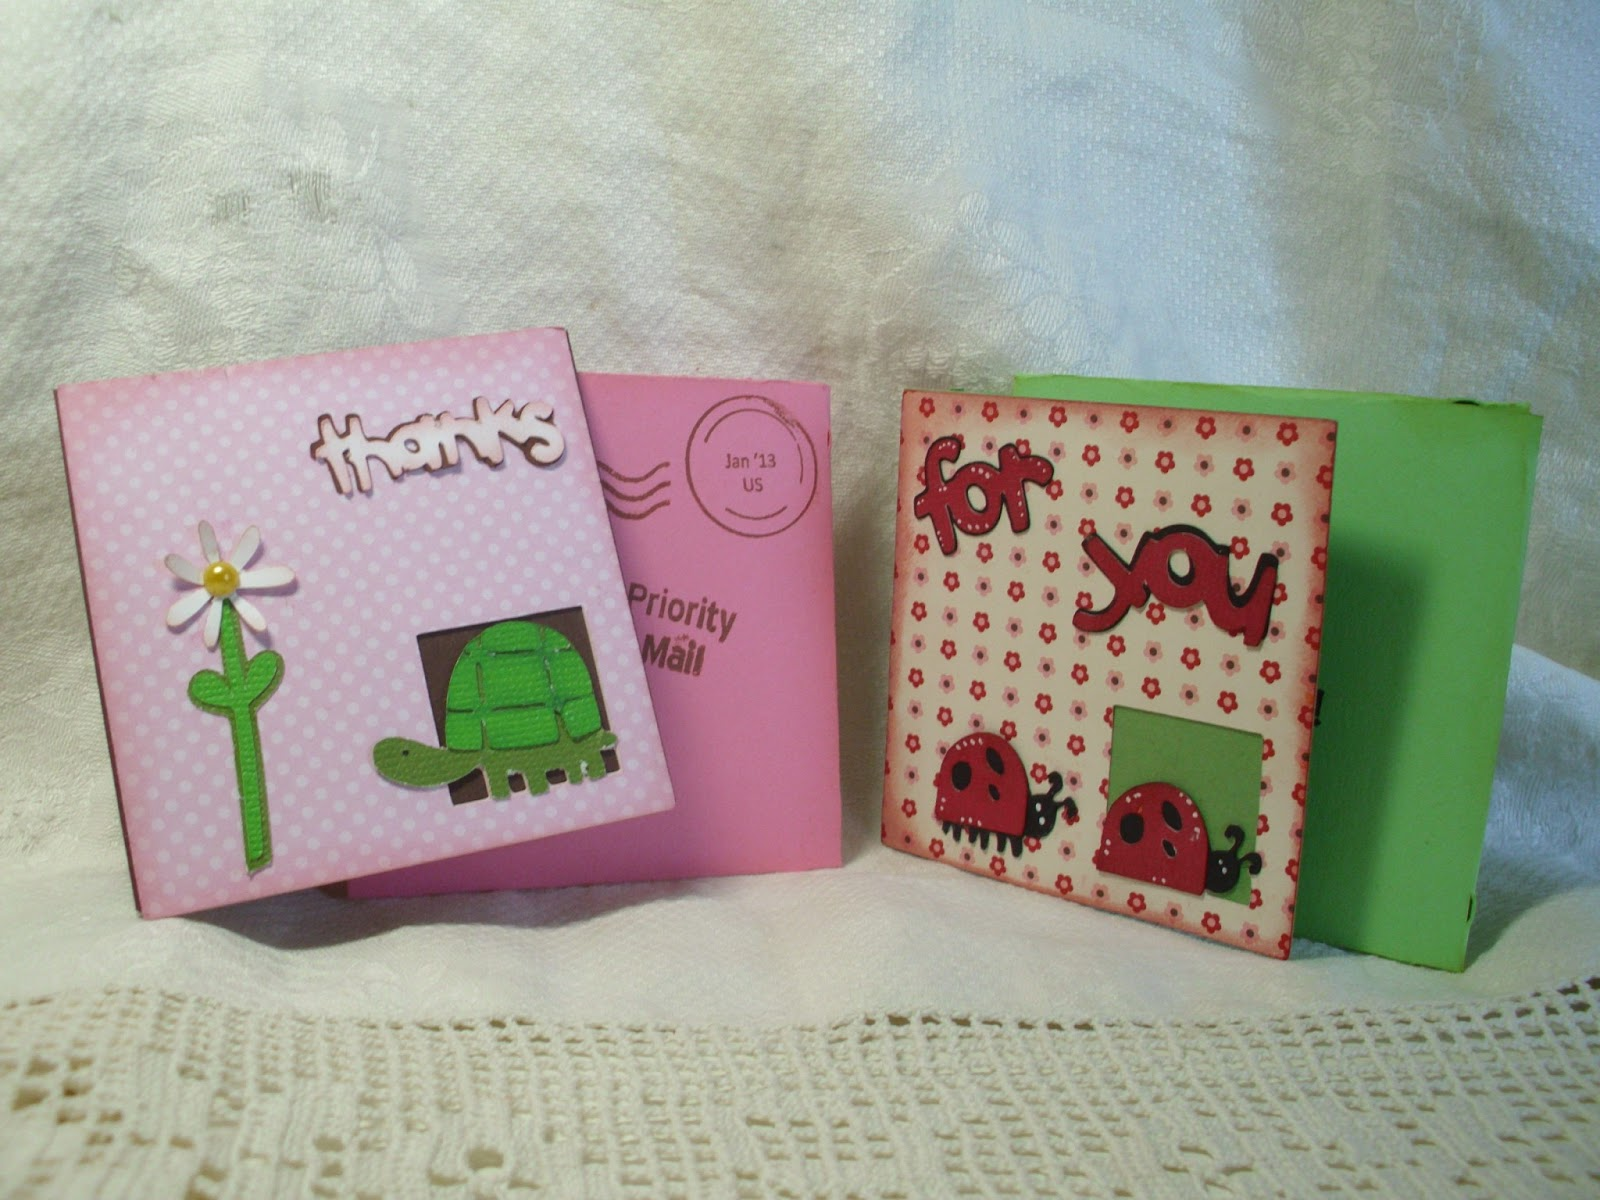 Cricket Craft Room: Shellys Craft Blog: My Cricut Craft Room Would You Ever